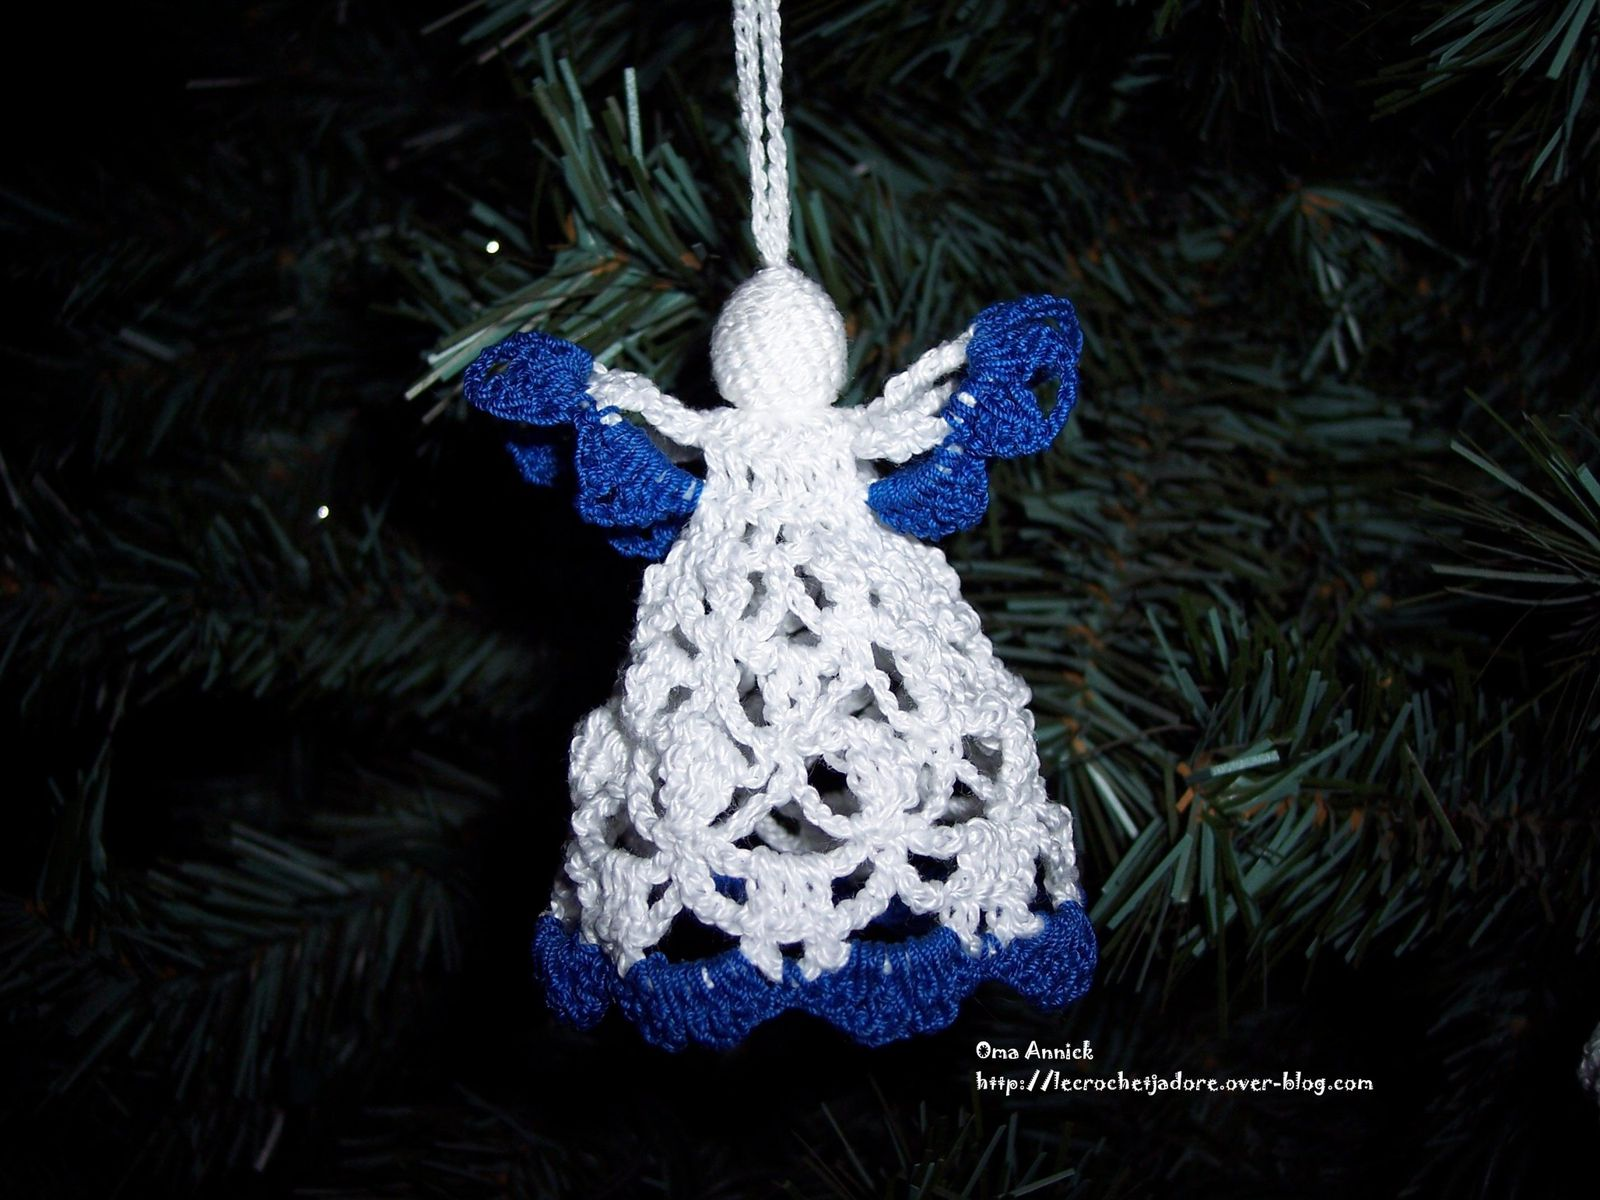 Deco Sapin Bleu Decoration Crochet Le Blog De Oma Annick